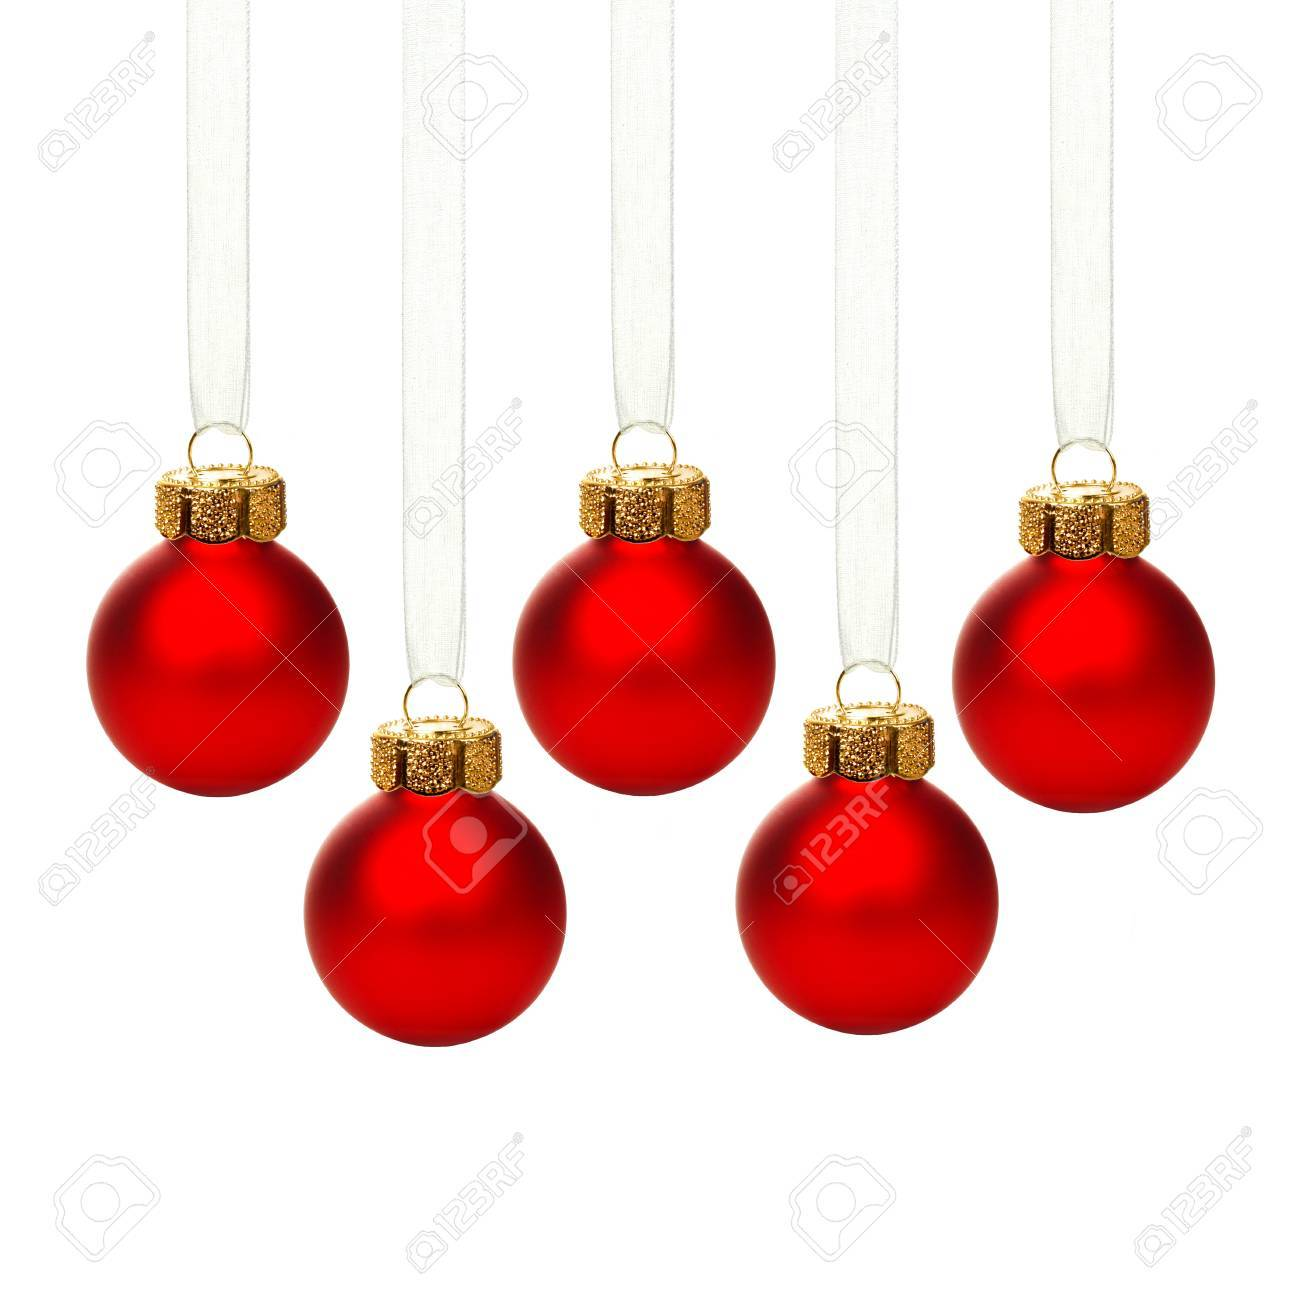 Red Christmas Ornaments.Group Of Hanging Red Christmas Ornaments With Ribbon Isolated